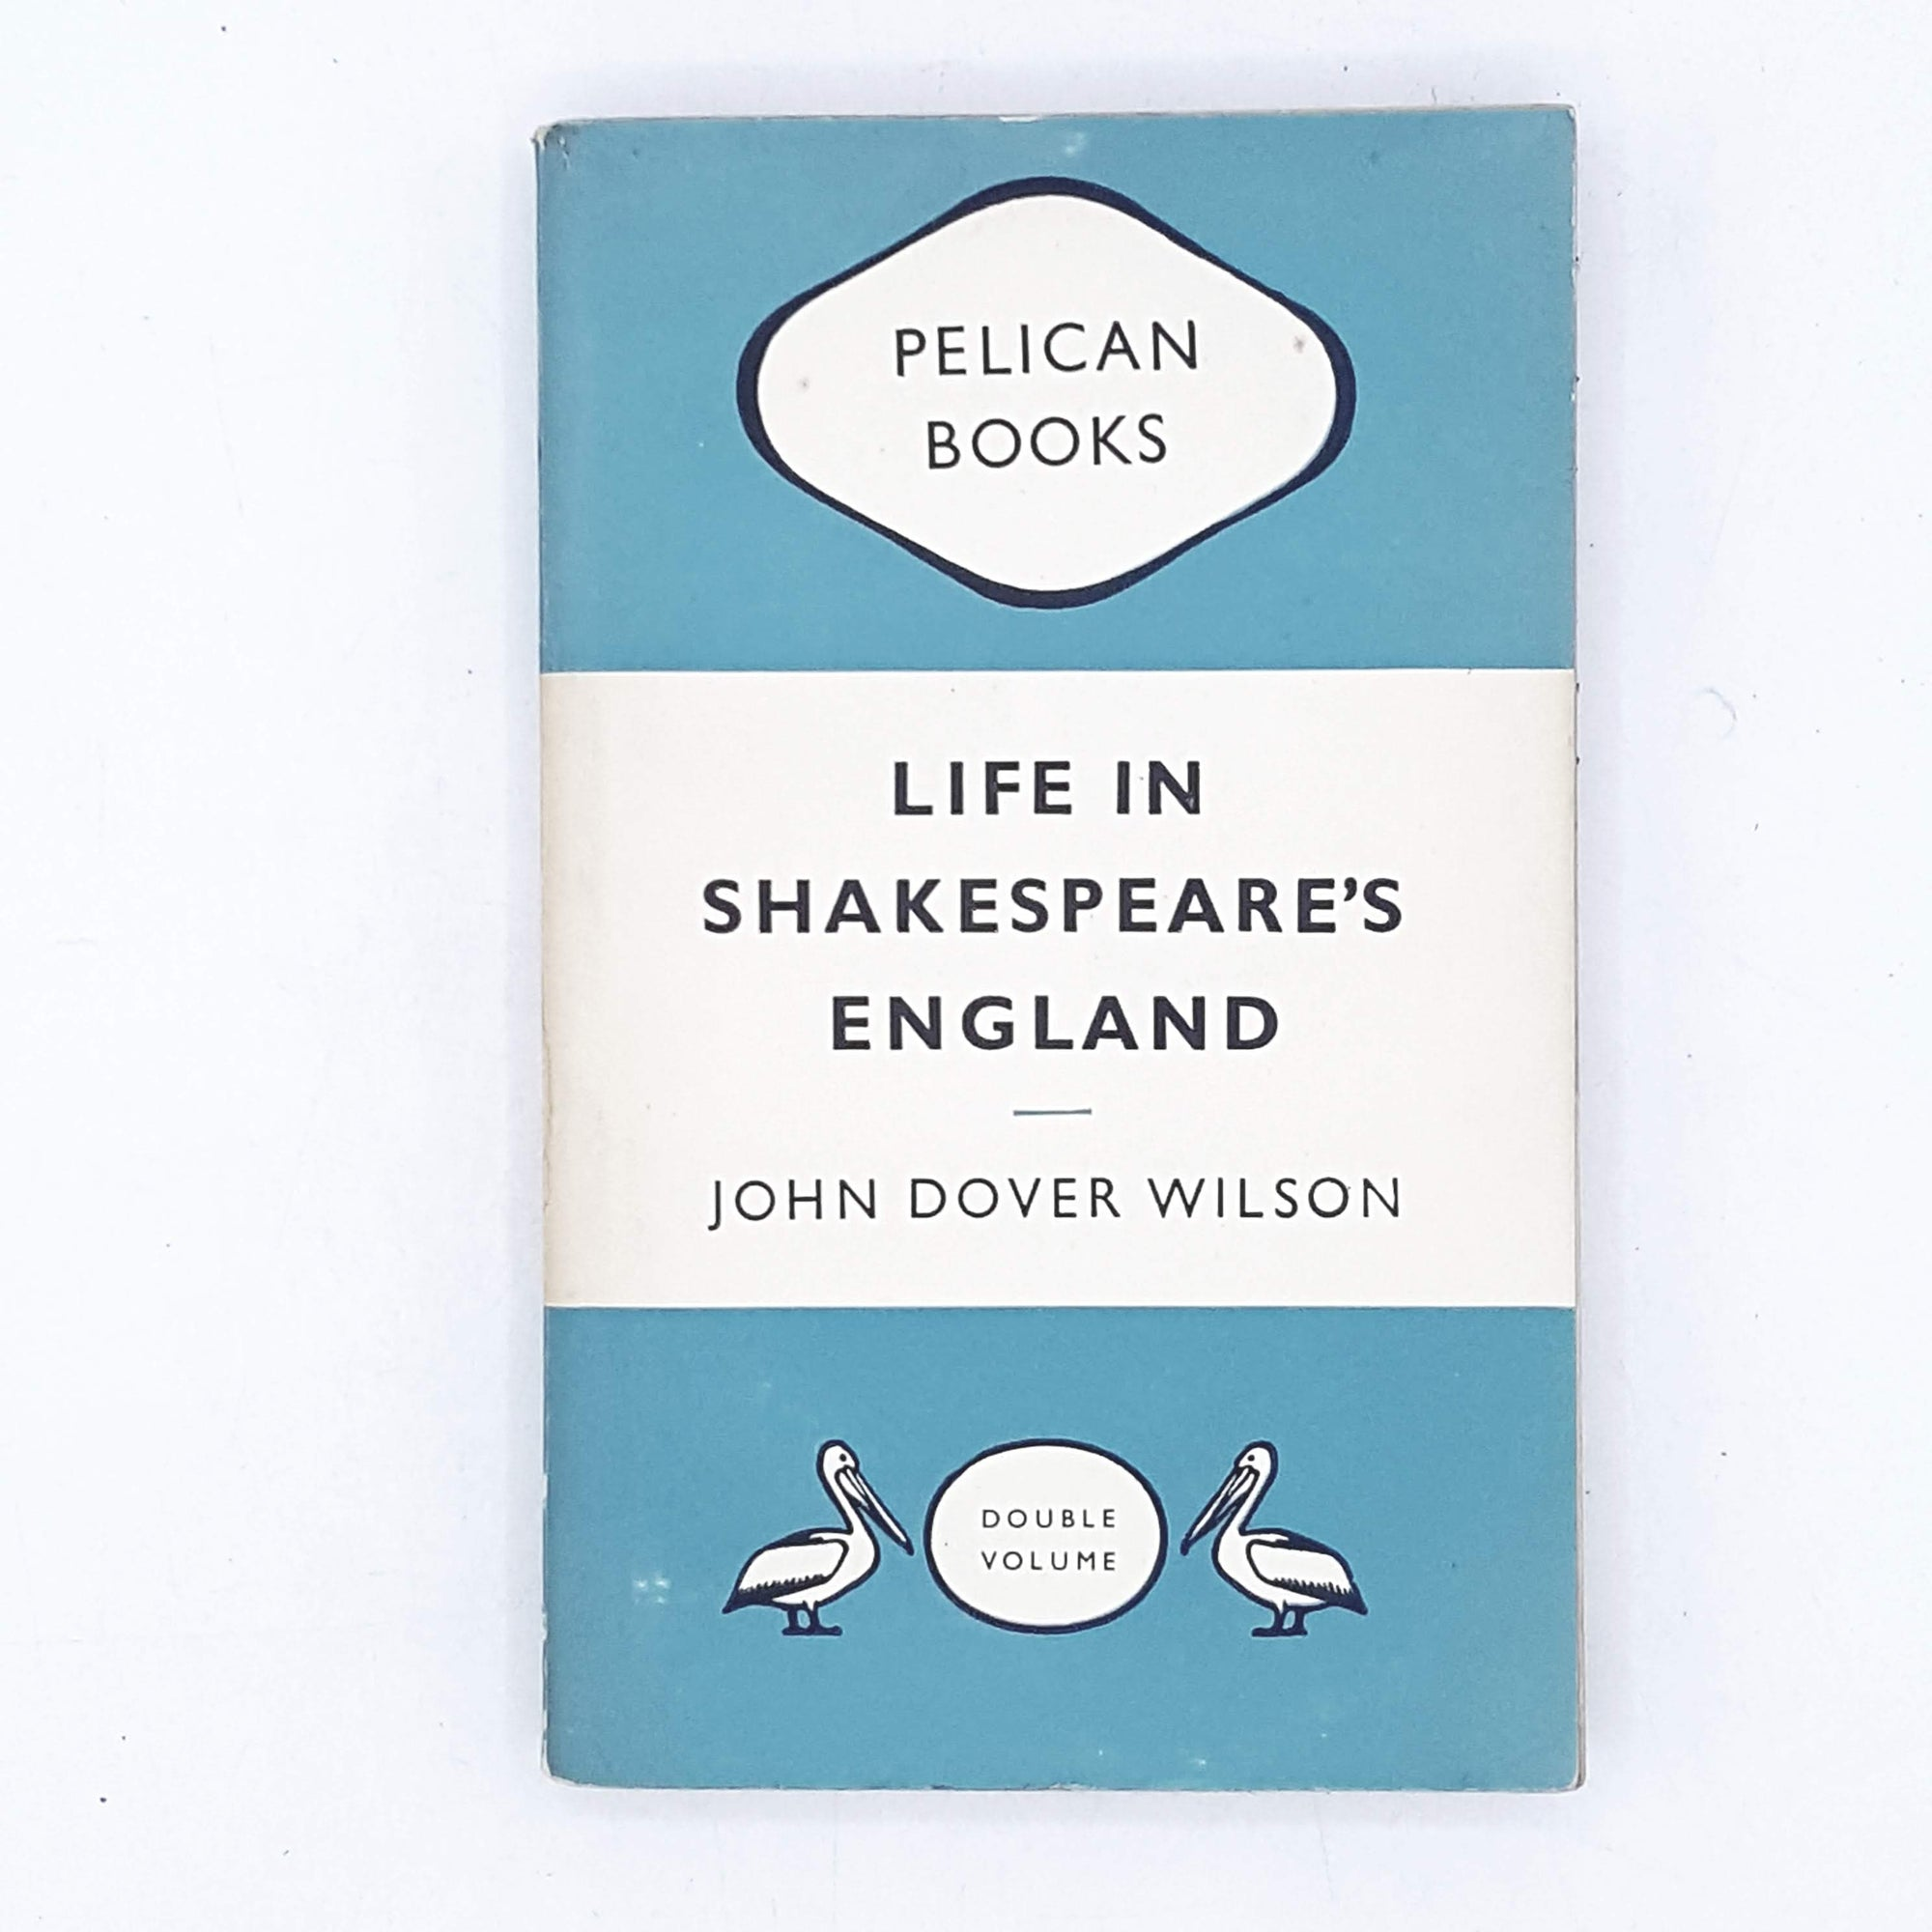 Life in Shakespeare's England by John Dover Wilson 1949